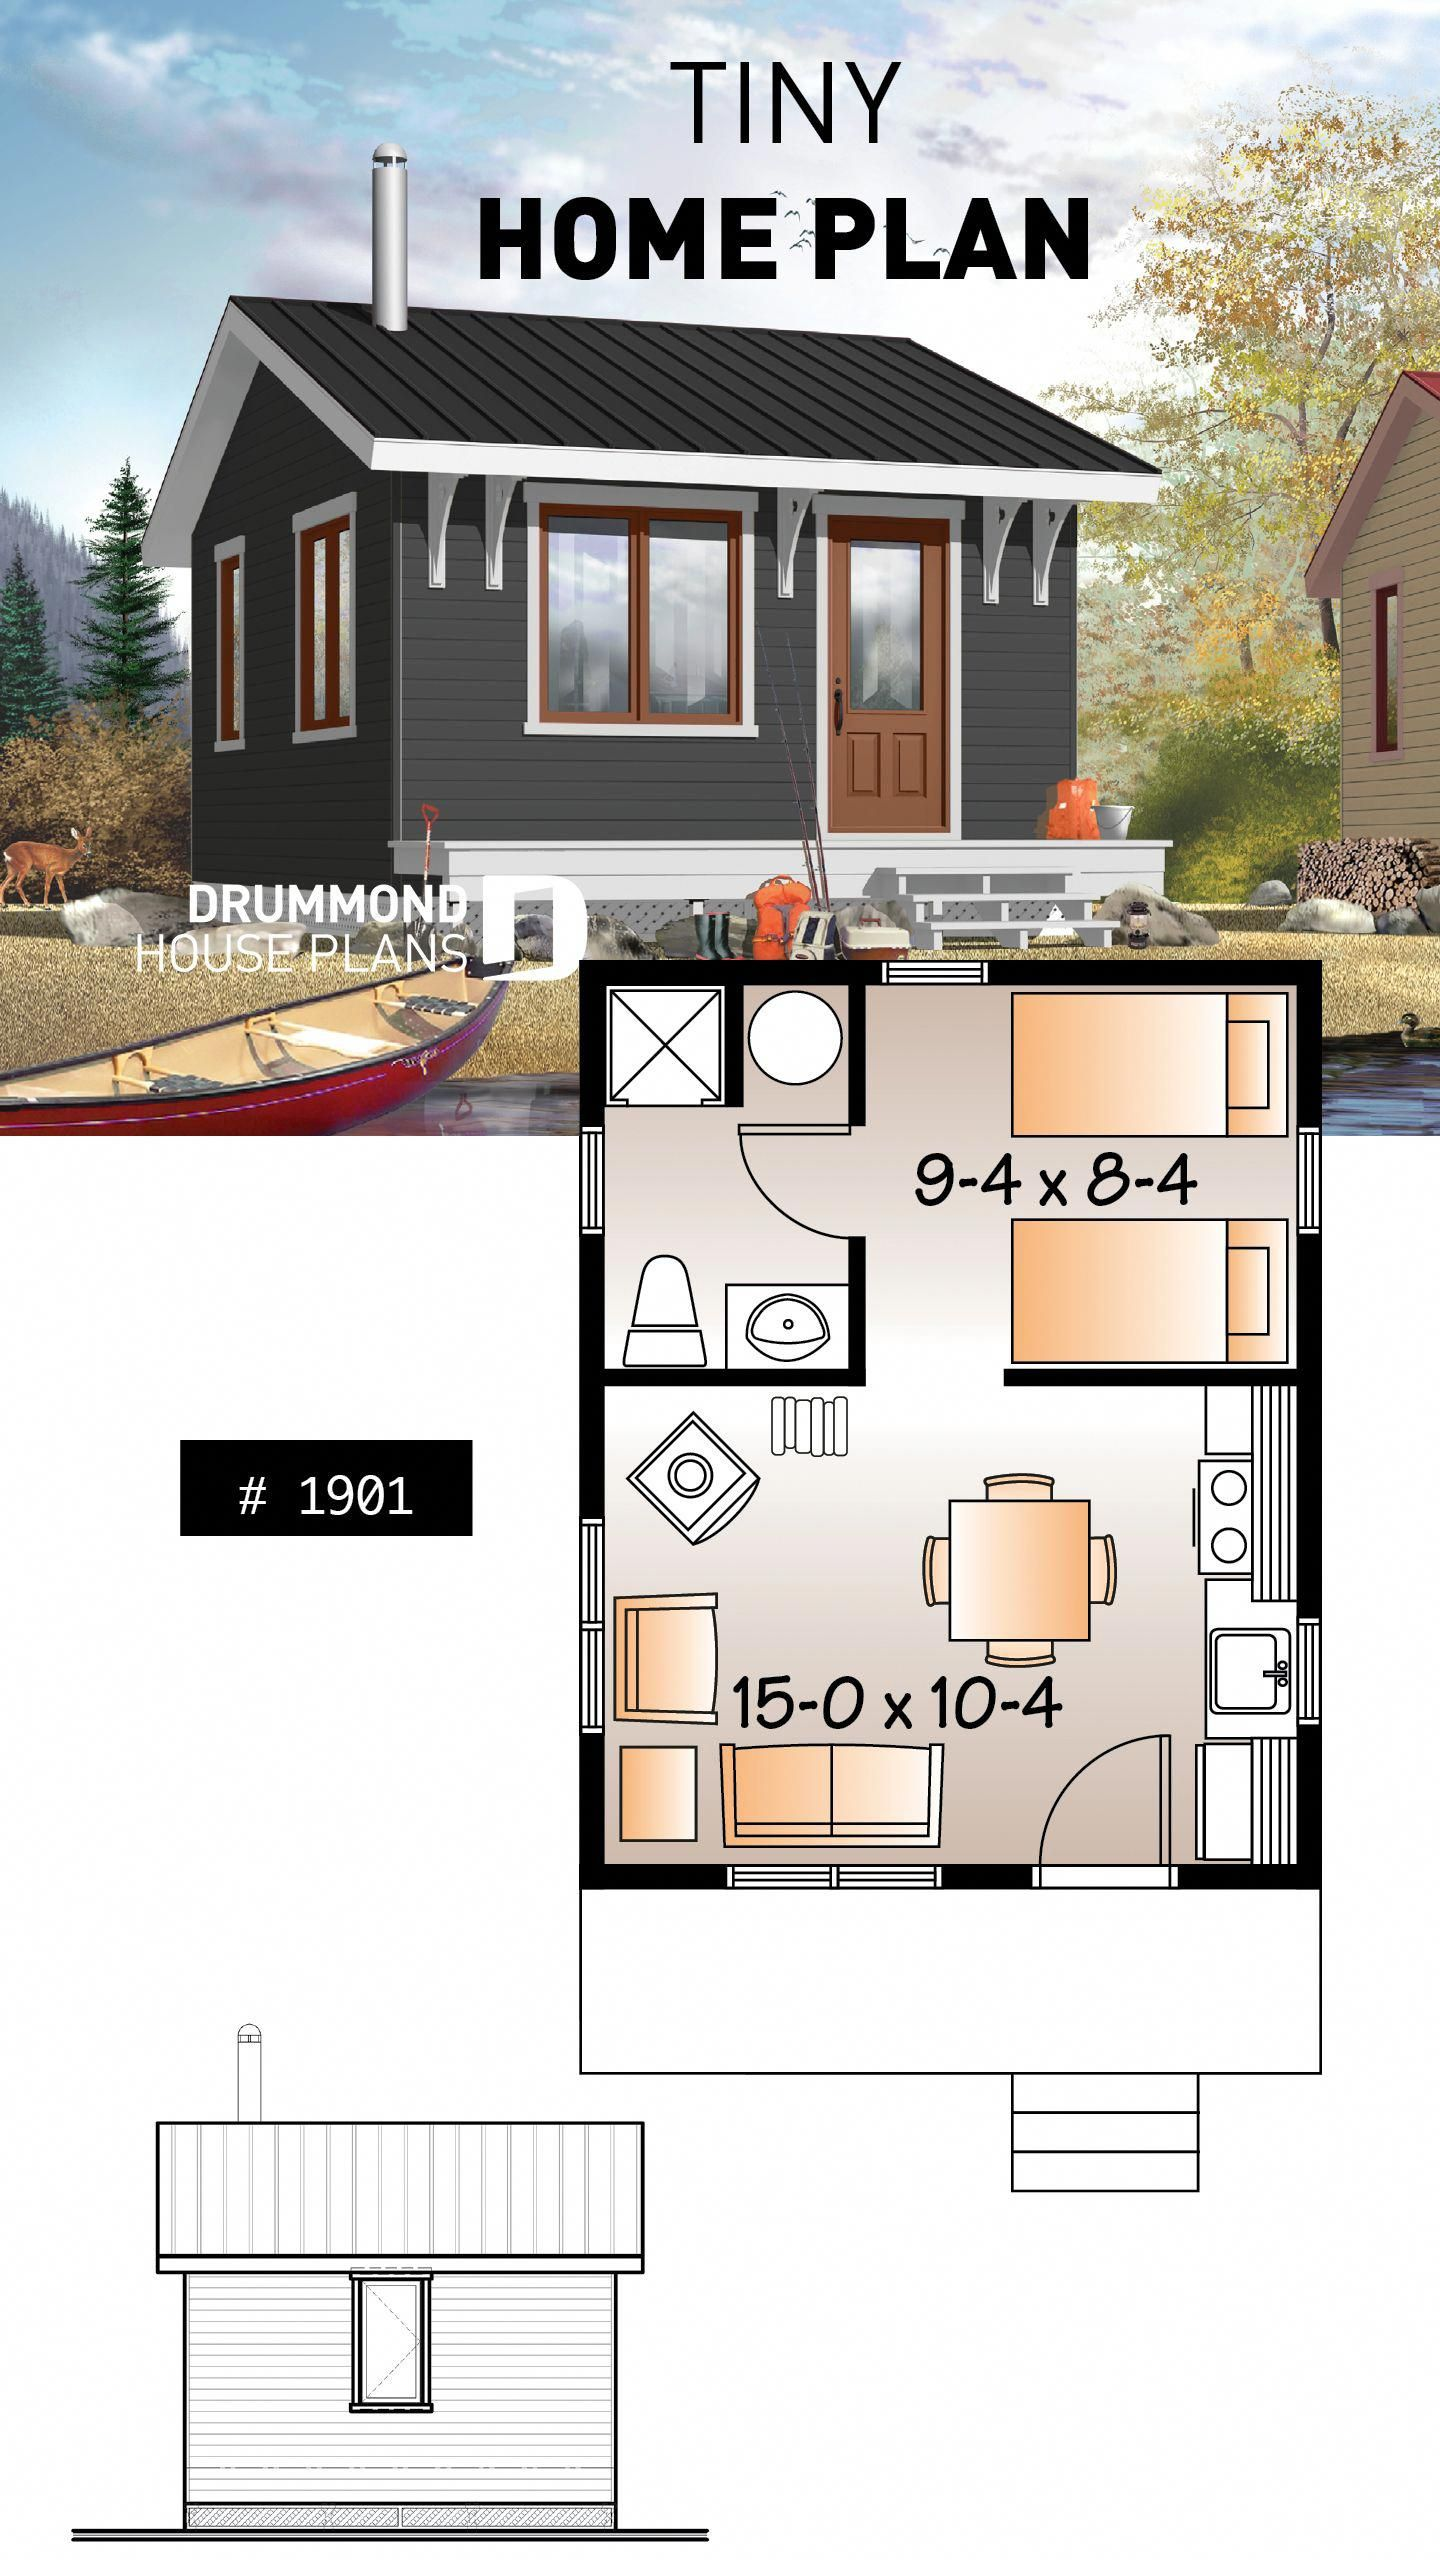 Small 1 Bedroom Cabin Plan 1 Shower Room Options For 3 Or 4 Season Included Wood Stove Inhomedeco Tiny House Cabin Tiny House Floor Plans Small Cabin Plans